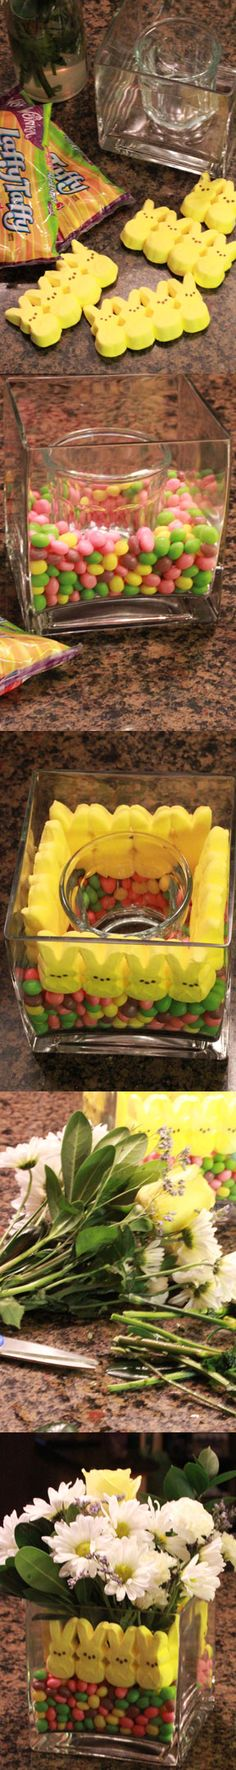 Best marshmallow peeps bunnies recipe on pinterest